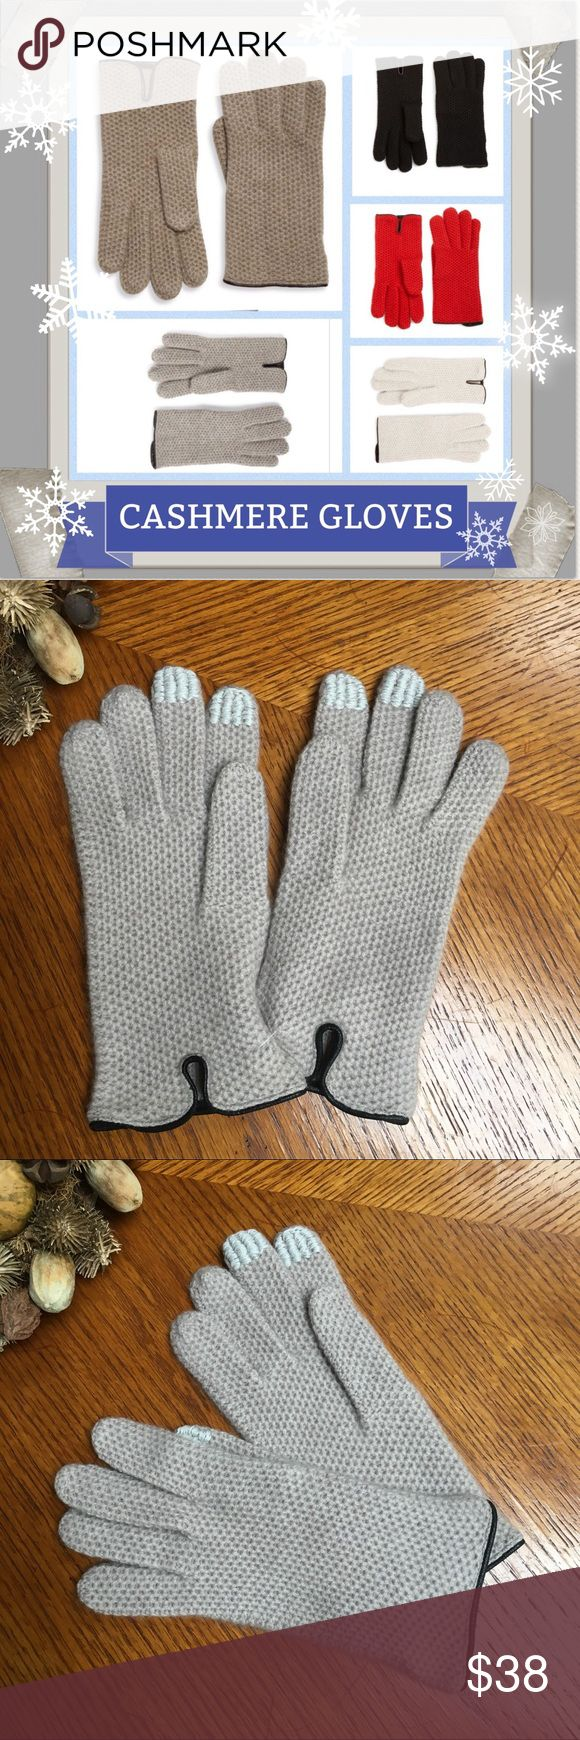 ❄️NWT Cashmere Gloves❄️ Cozy gloves designed in a textured, honeycombed-weaved Cashmere and finished with rich leather trim. Colors: Black, Light Grey, Coffee & Grain Heather. 100% Cashmere/Leather. One Size fits all. NWT. This gloves selling at Saks fifth avenue for $95. Makes a great gift 🎁! If you have any questions, please ask! 💞 Cashmere Accessories Gloves & Mittens